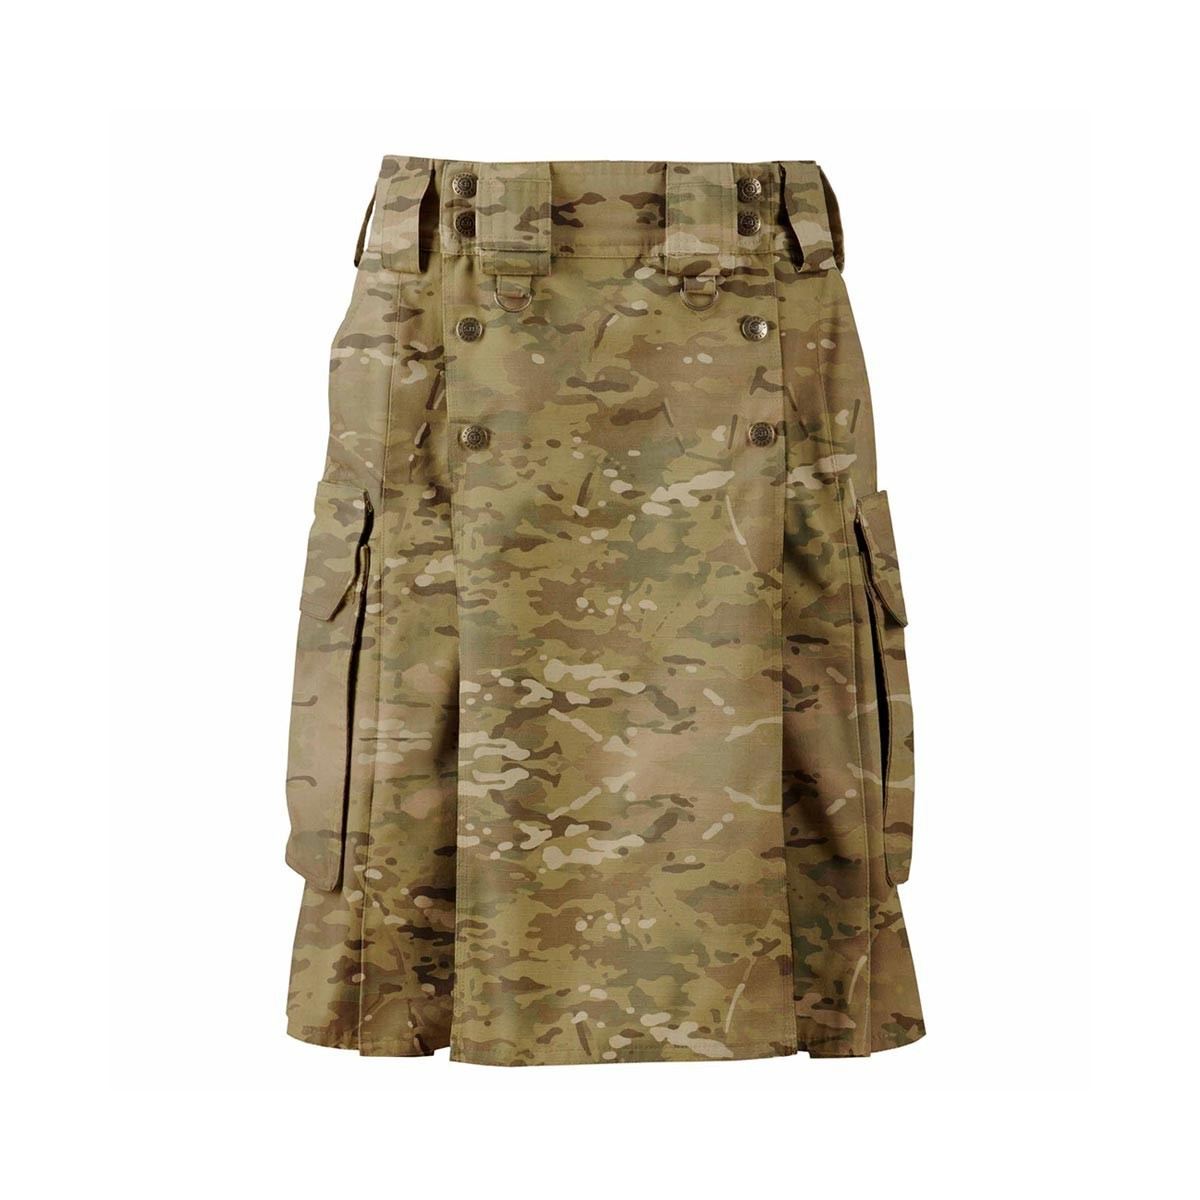 Duty Kilt Multicam